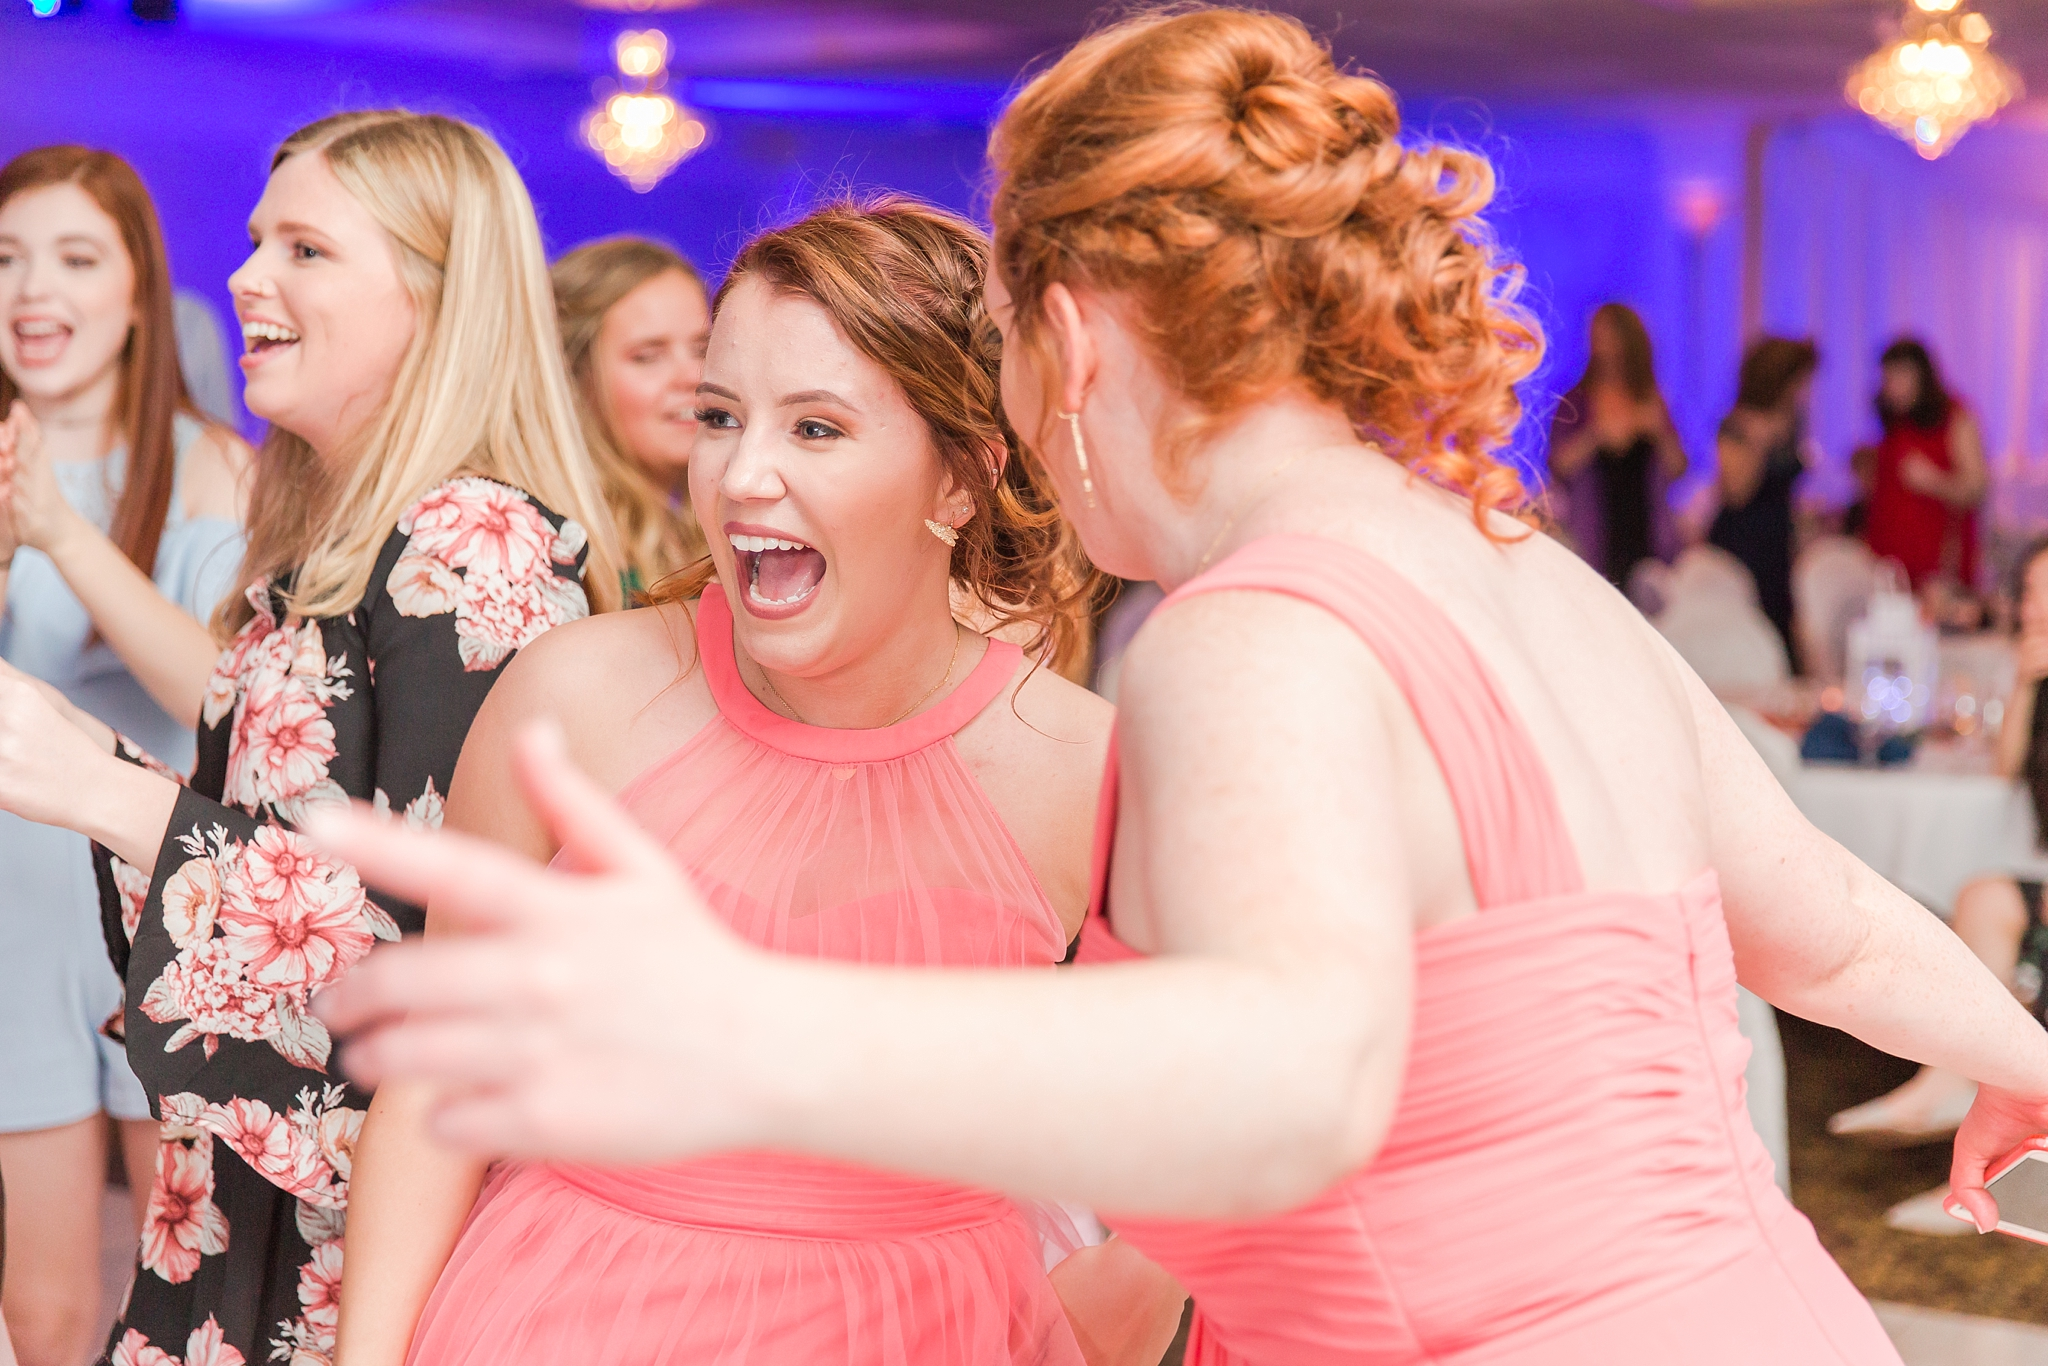 romantic-artful-candid-wedding-photos-in-st-clair-shores-at-the-white-house-wedding-chapel-by-courtney-carolyn-photography_0083.jpg